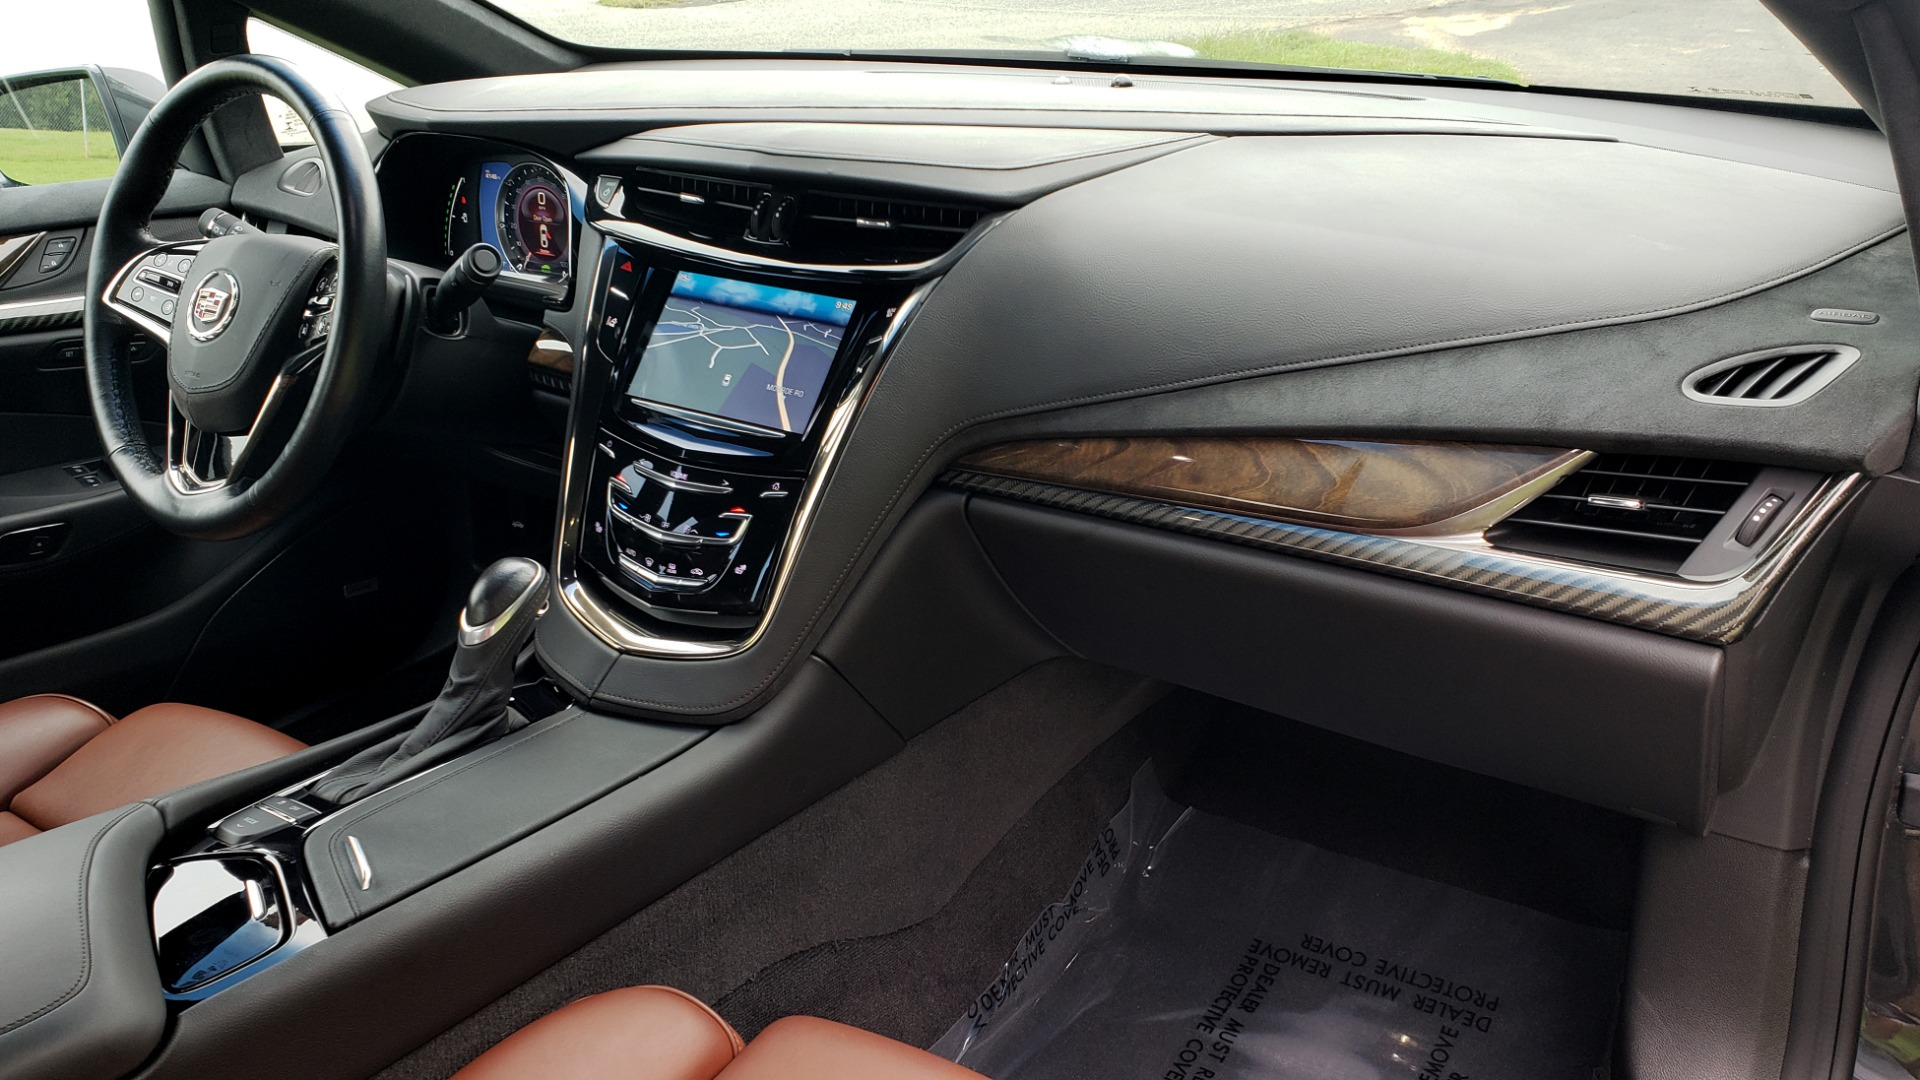 Used 2014 Cadillac ELR 2DR COUPE / HYBRID / NAV / BOSE / HEATED SEATS / REARVIEW for sale $34,000 at Formula Imports in Charlotte NC 28227 60